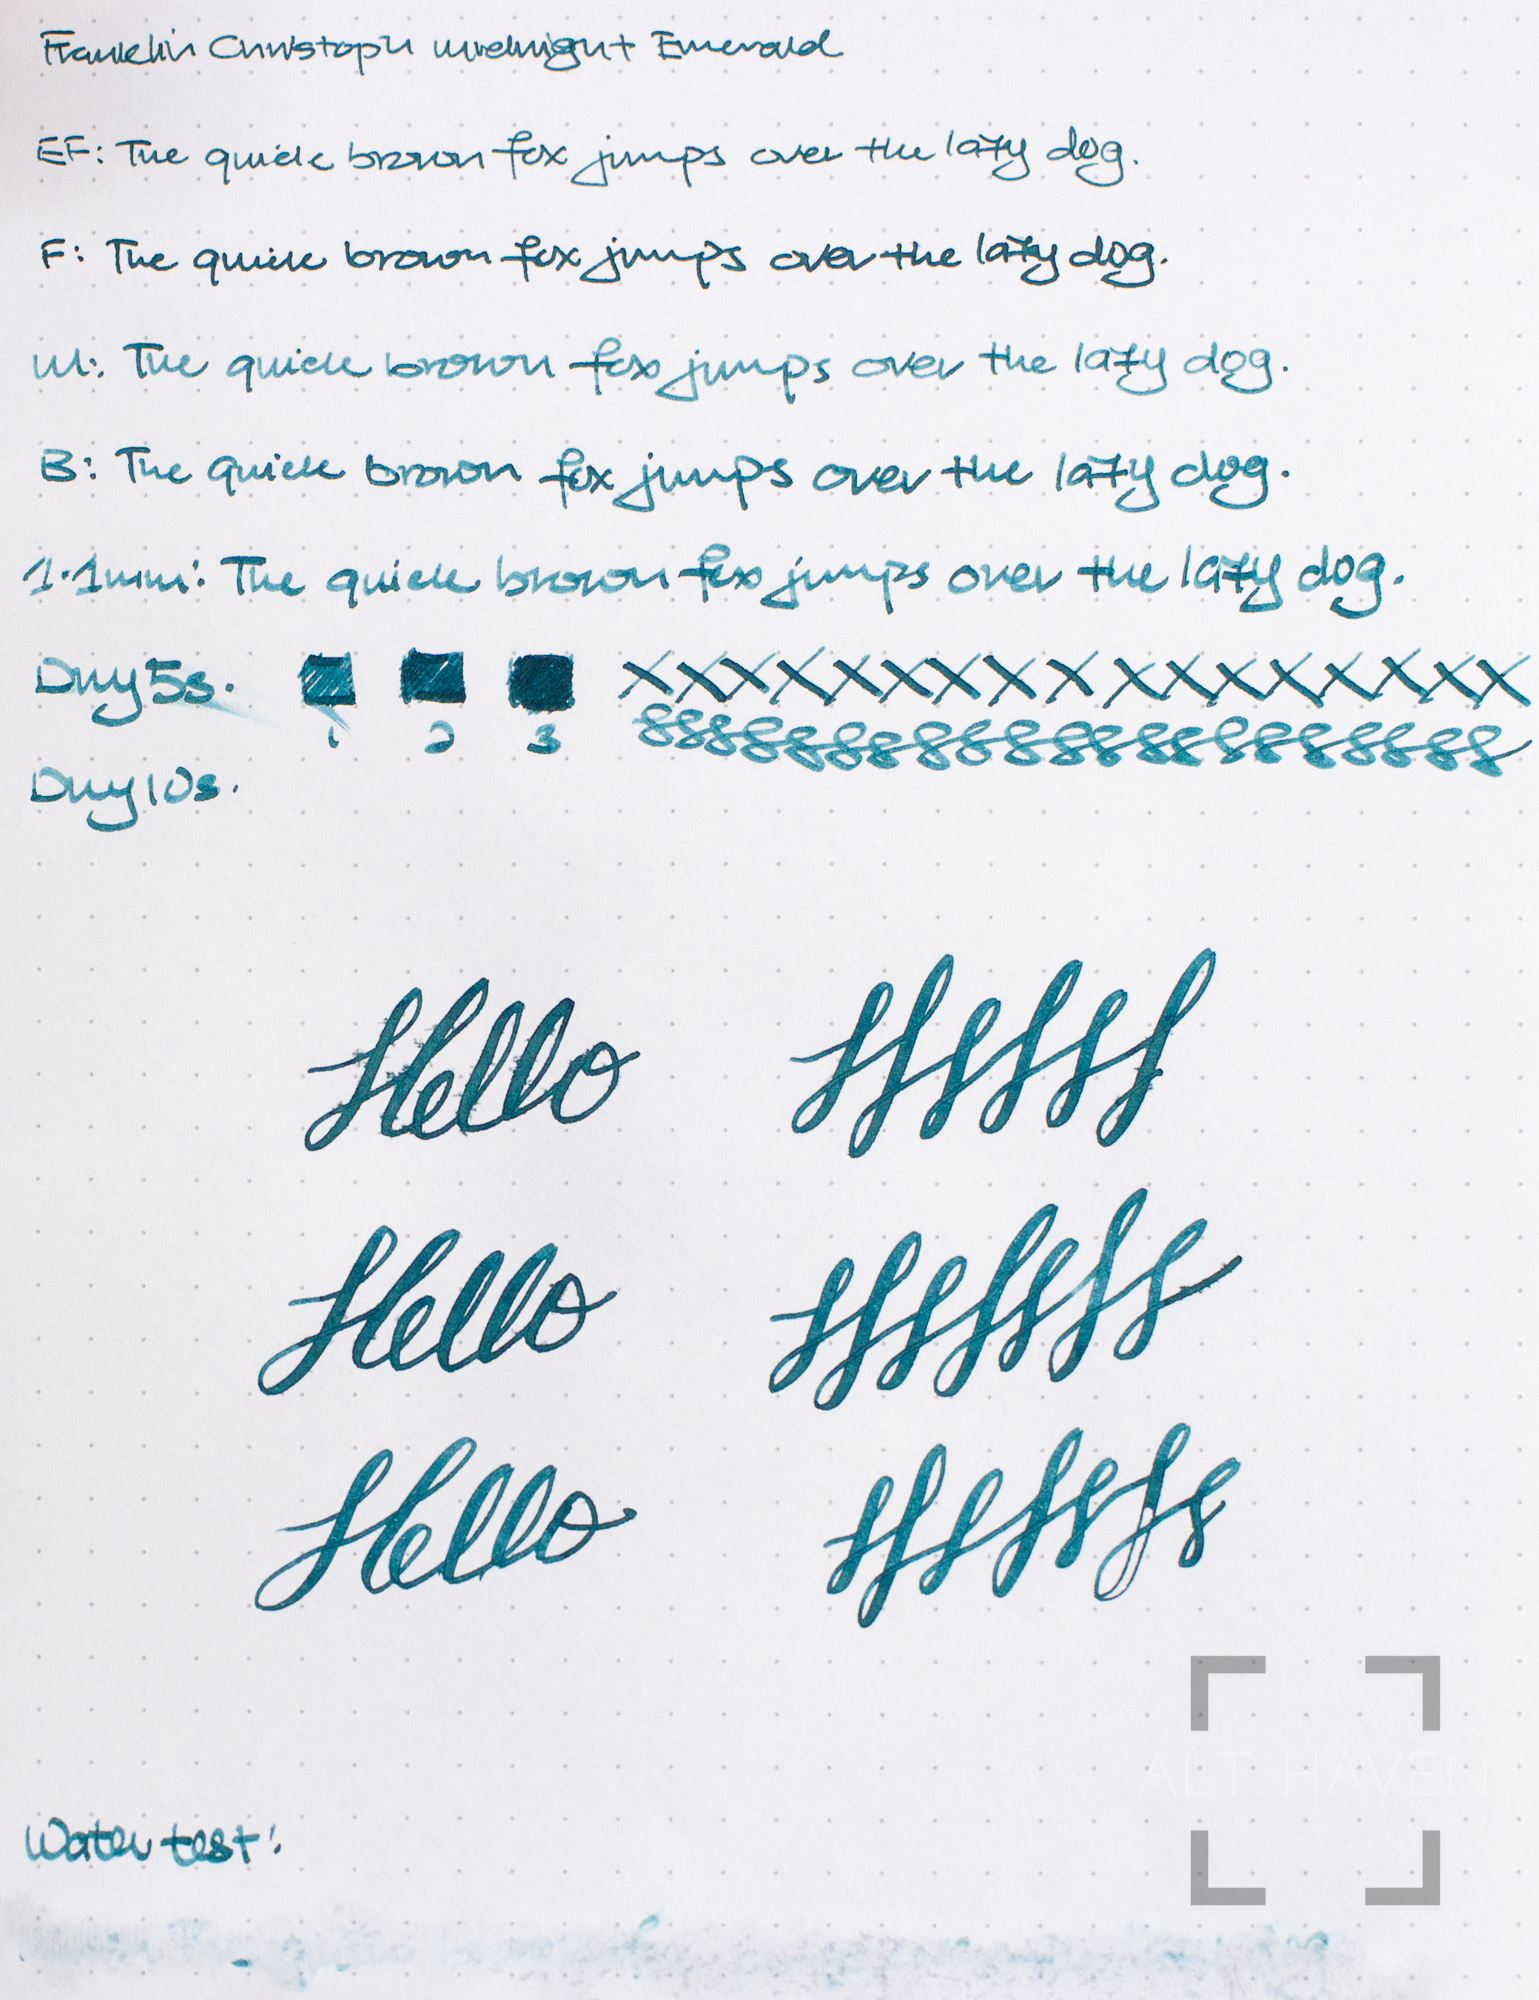 Franklin Christoph Midnight Emerald.jpg